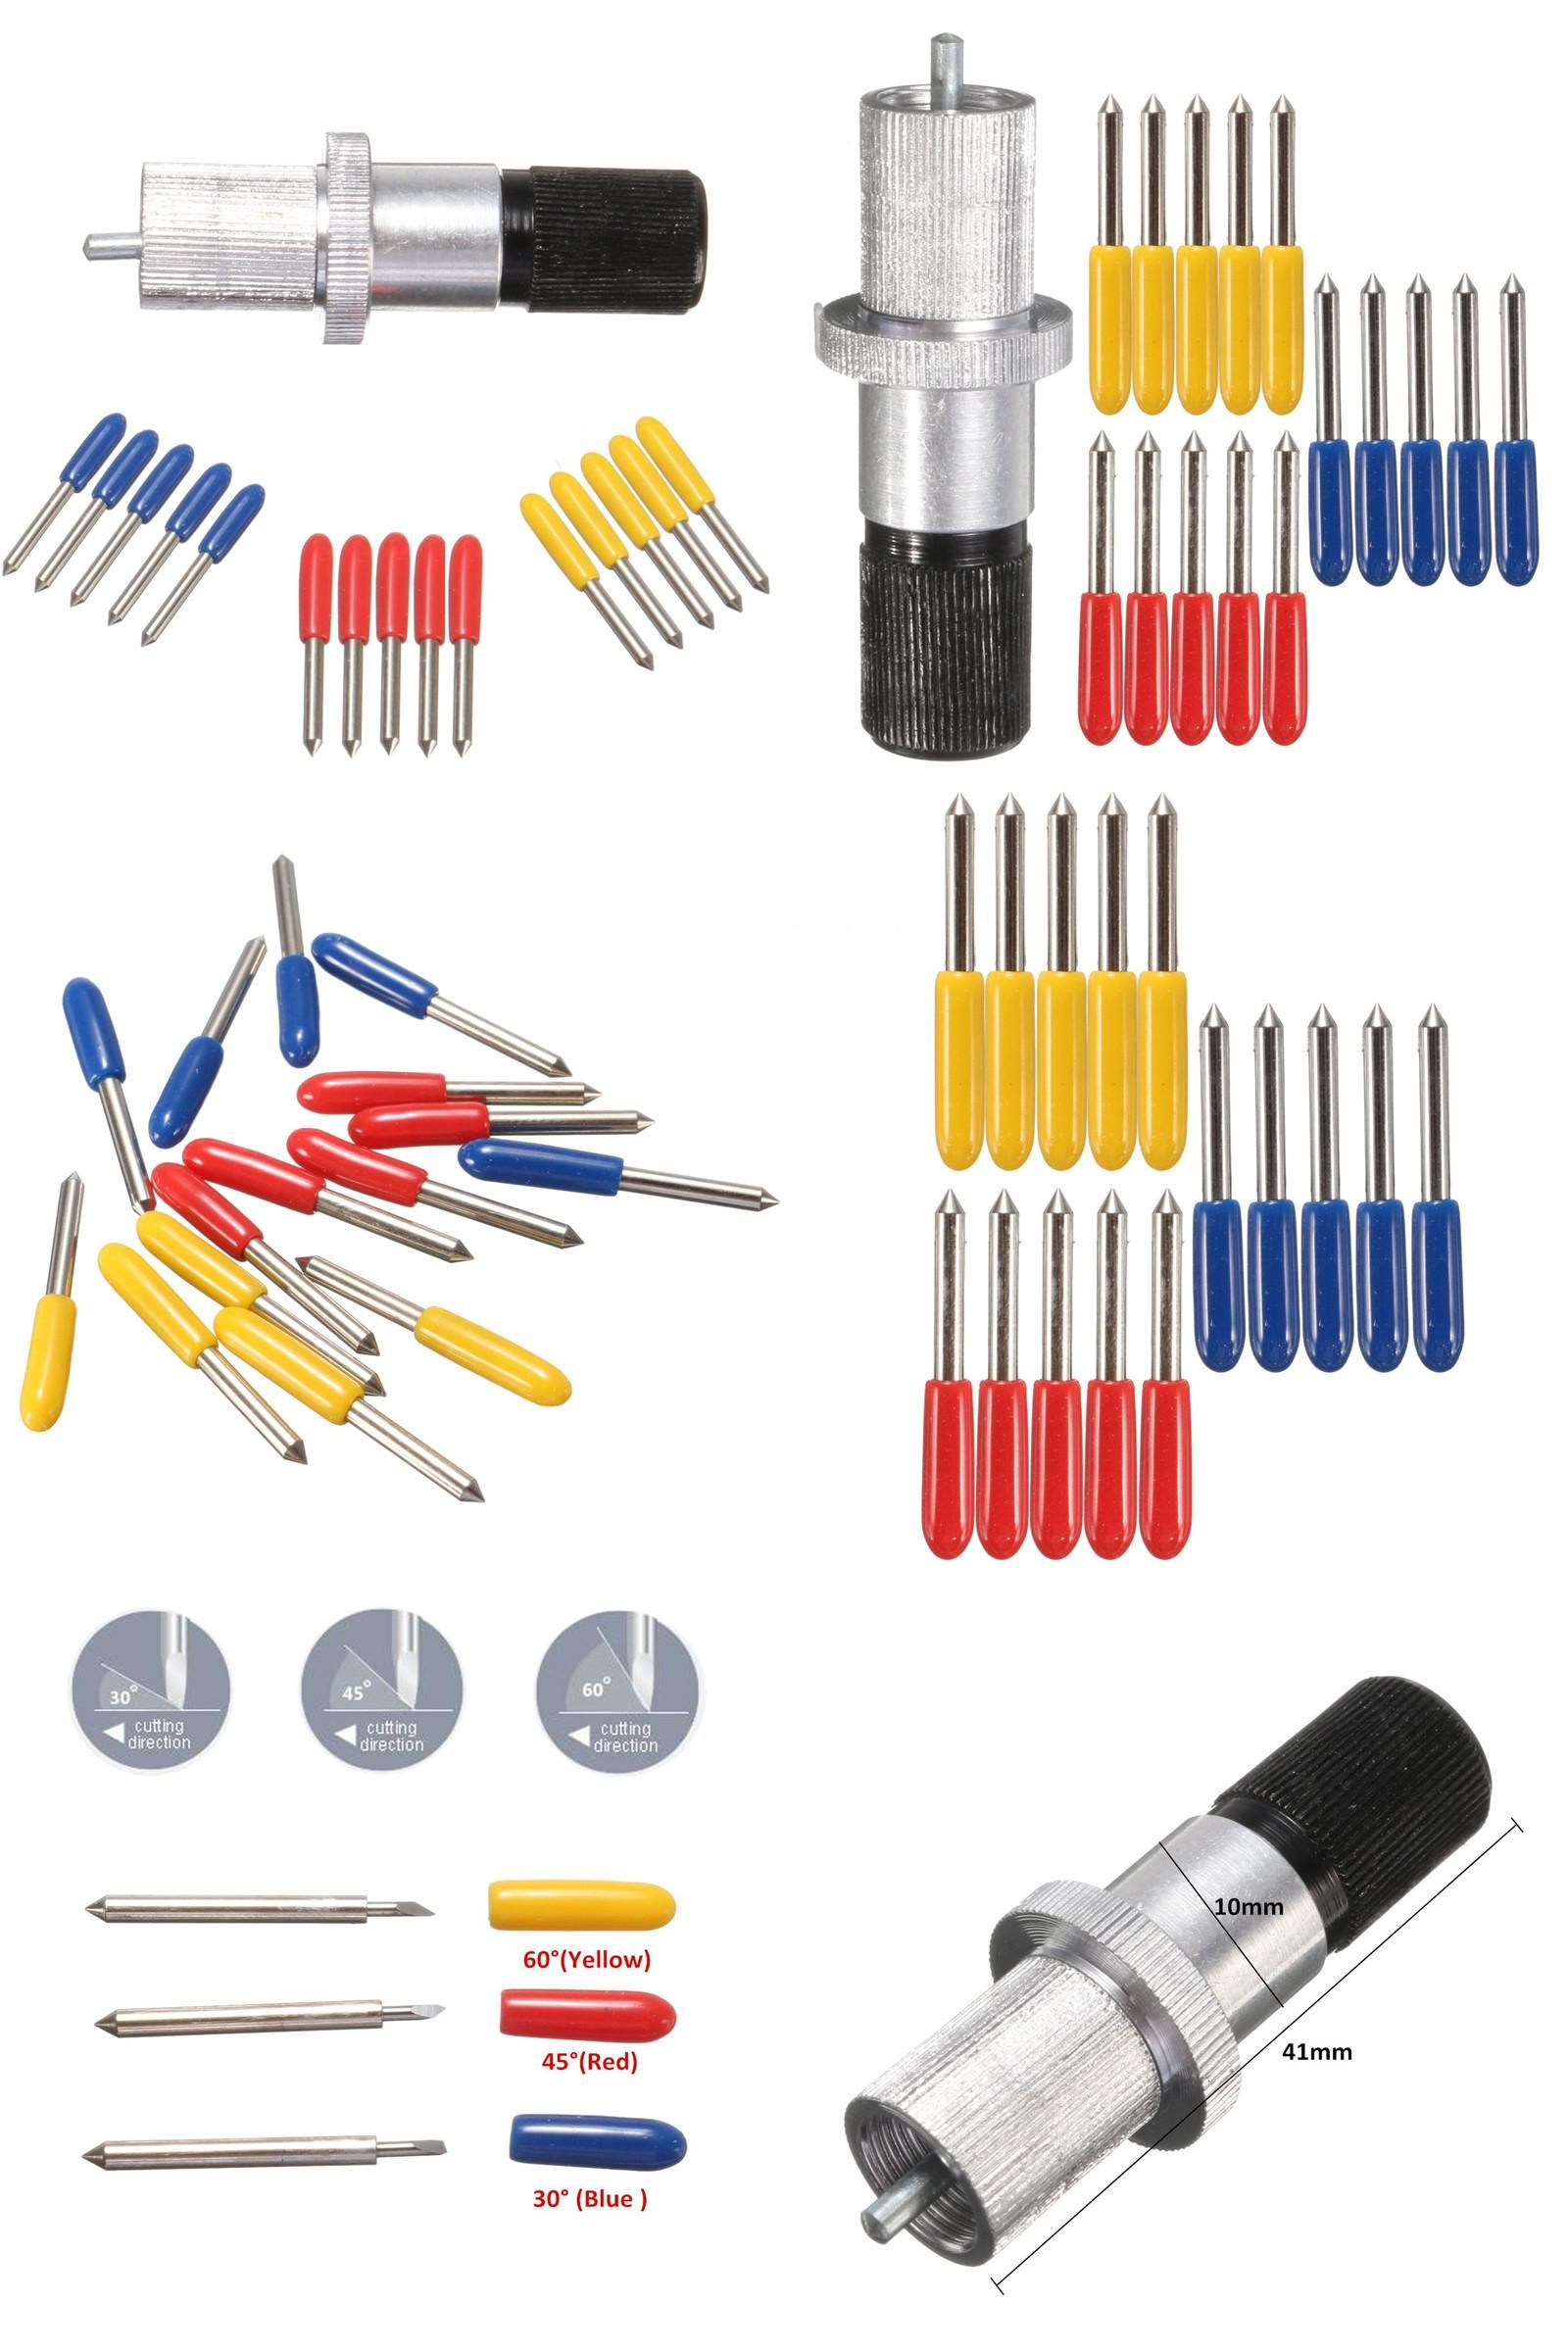 15 Pcs//Set 30° 45° 60° Degree For Cutting Plotter Vinyl Cutter Blade With Holder